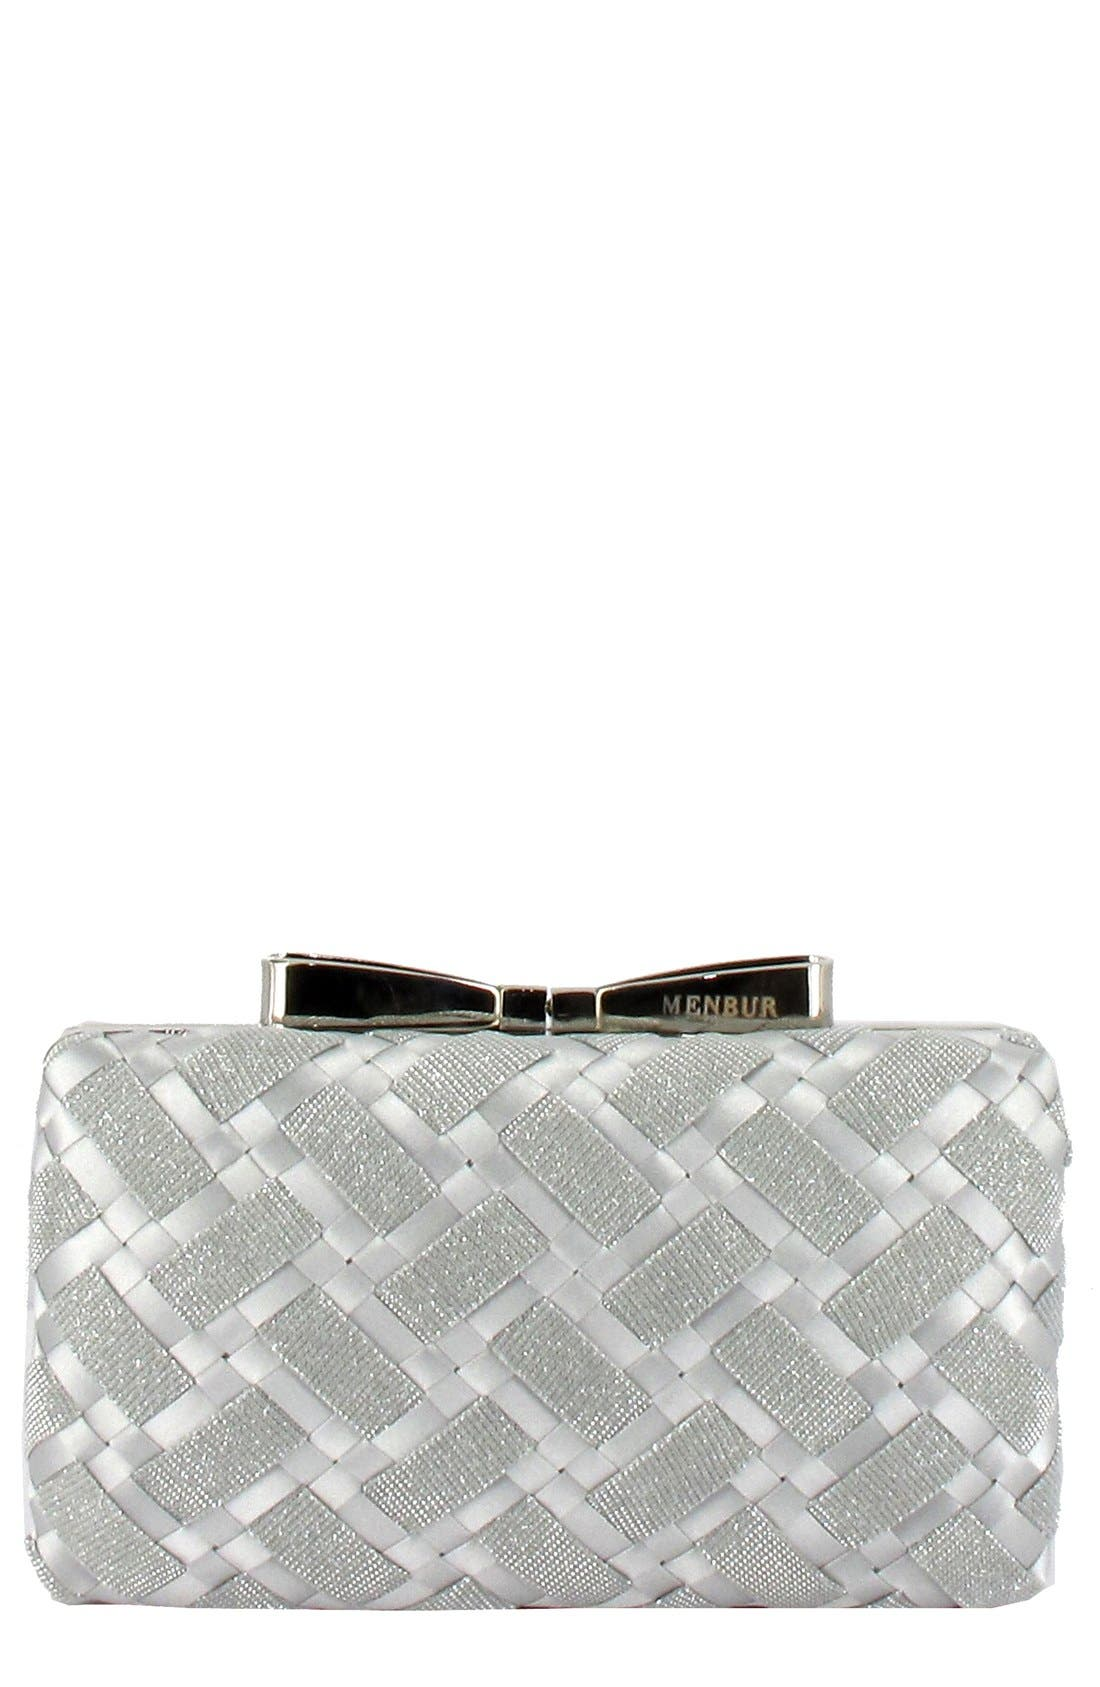 Alternate Image 1 Selected - Menbur Woven Box Clutch with Bow Clasp